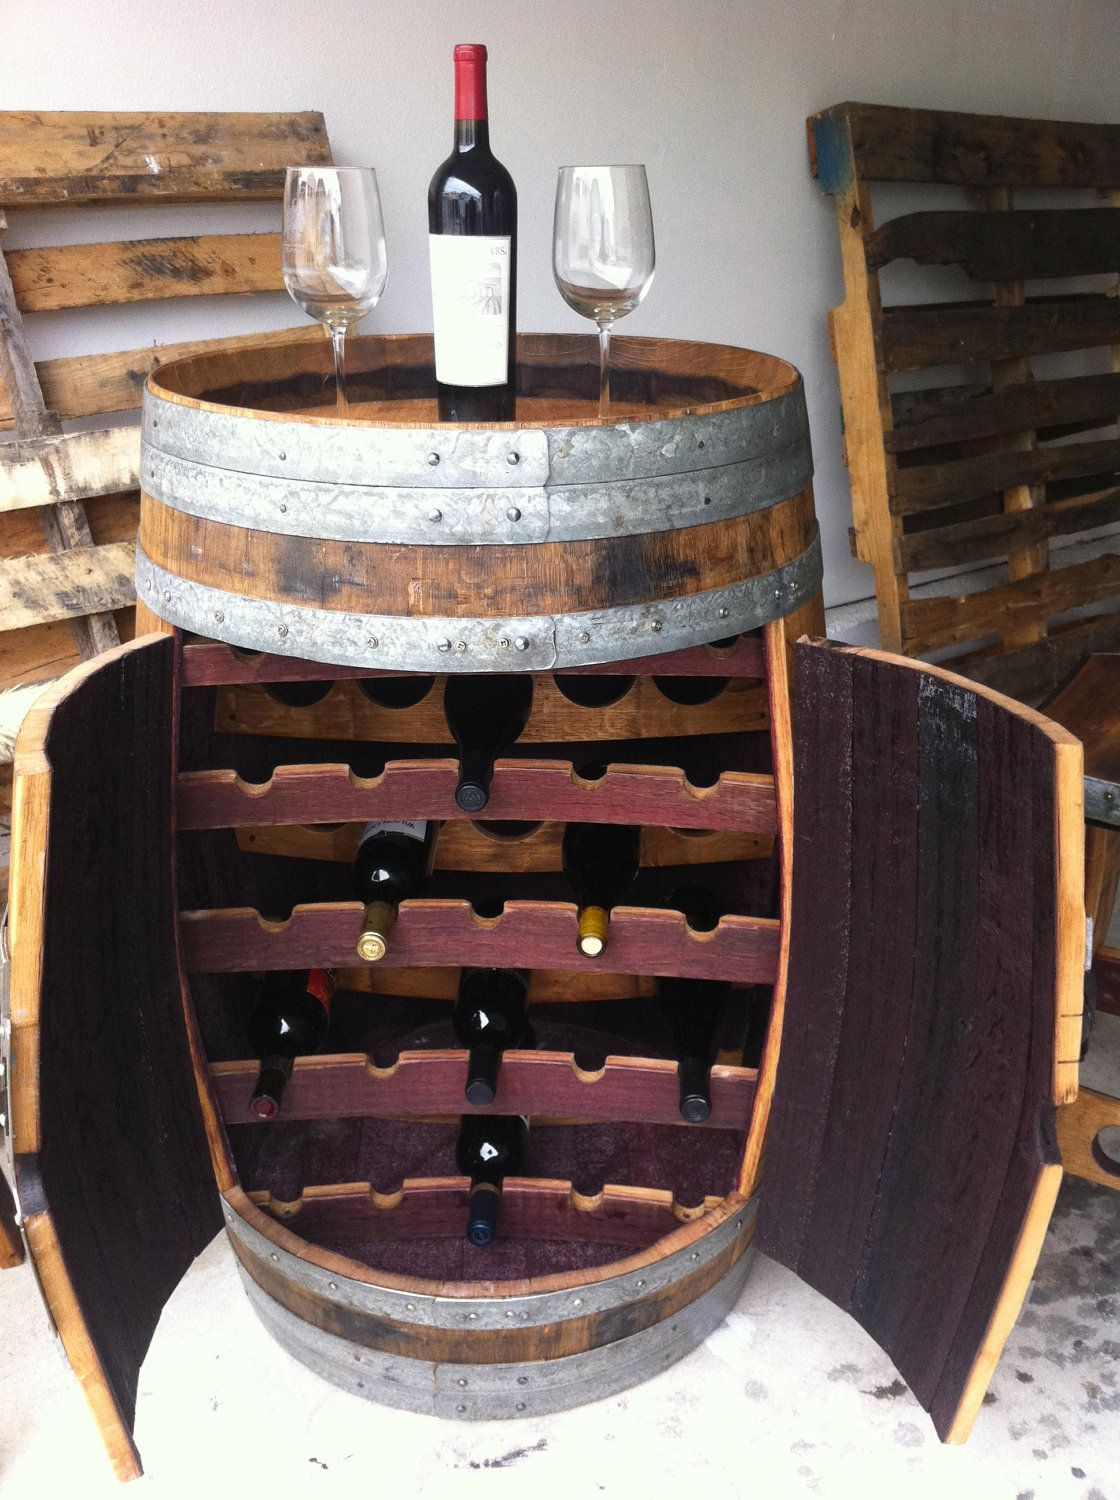 images old ways pinterest racks about on archives barrels wine furniture brilliant rack barrel image reusing details of from these diy photo